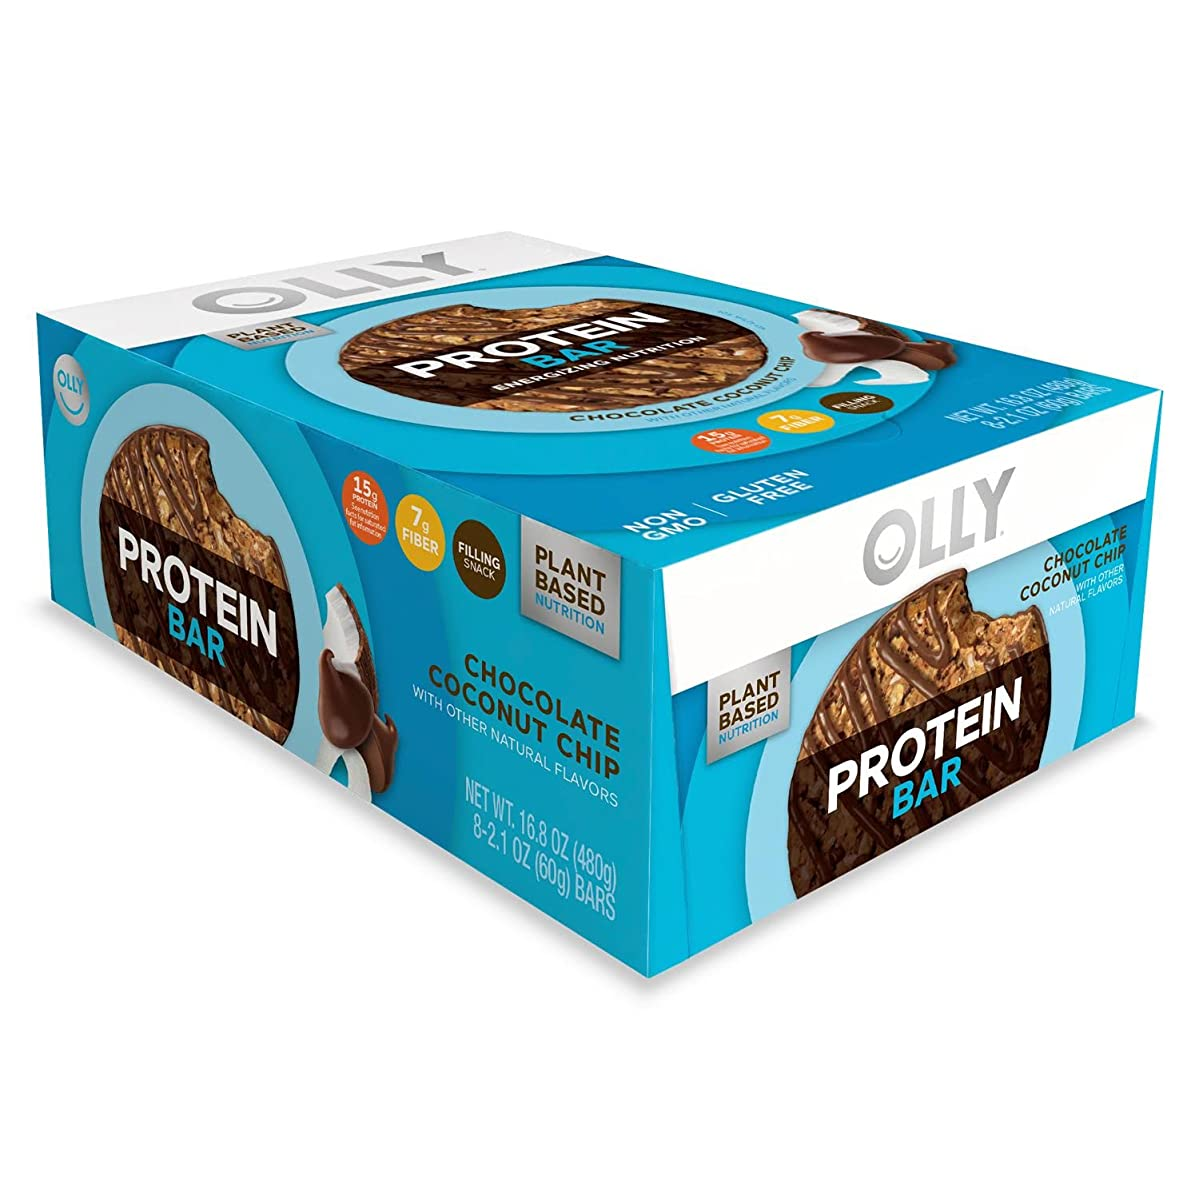 OLLY Plant-Based Protein Bar, Chocolate Coconut Chip, 2.1 Ounce Bars (Pack of 8) 15g Protein Non-GMO Gluten- Free A Well Rounded Snack for Your Healthy Lifestyle